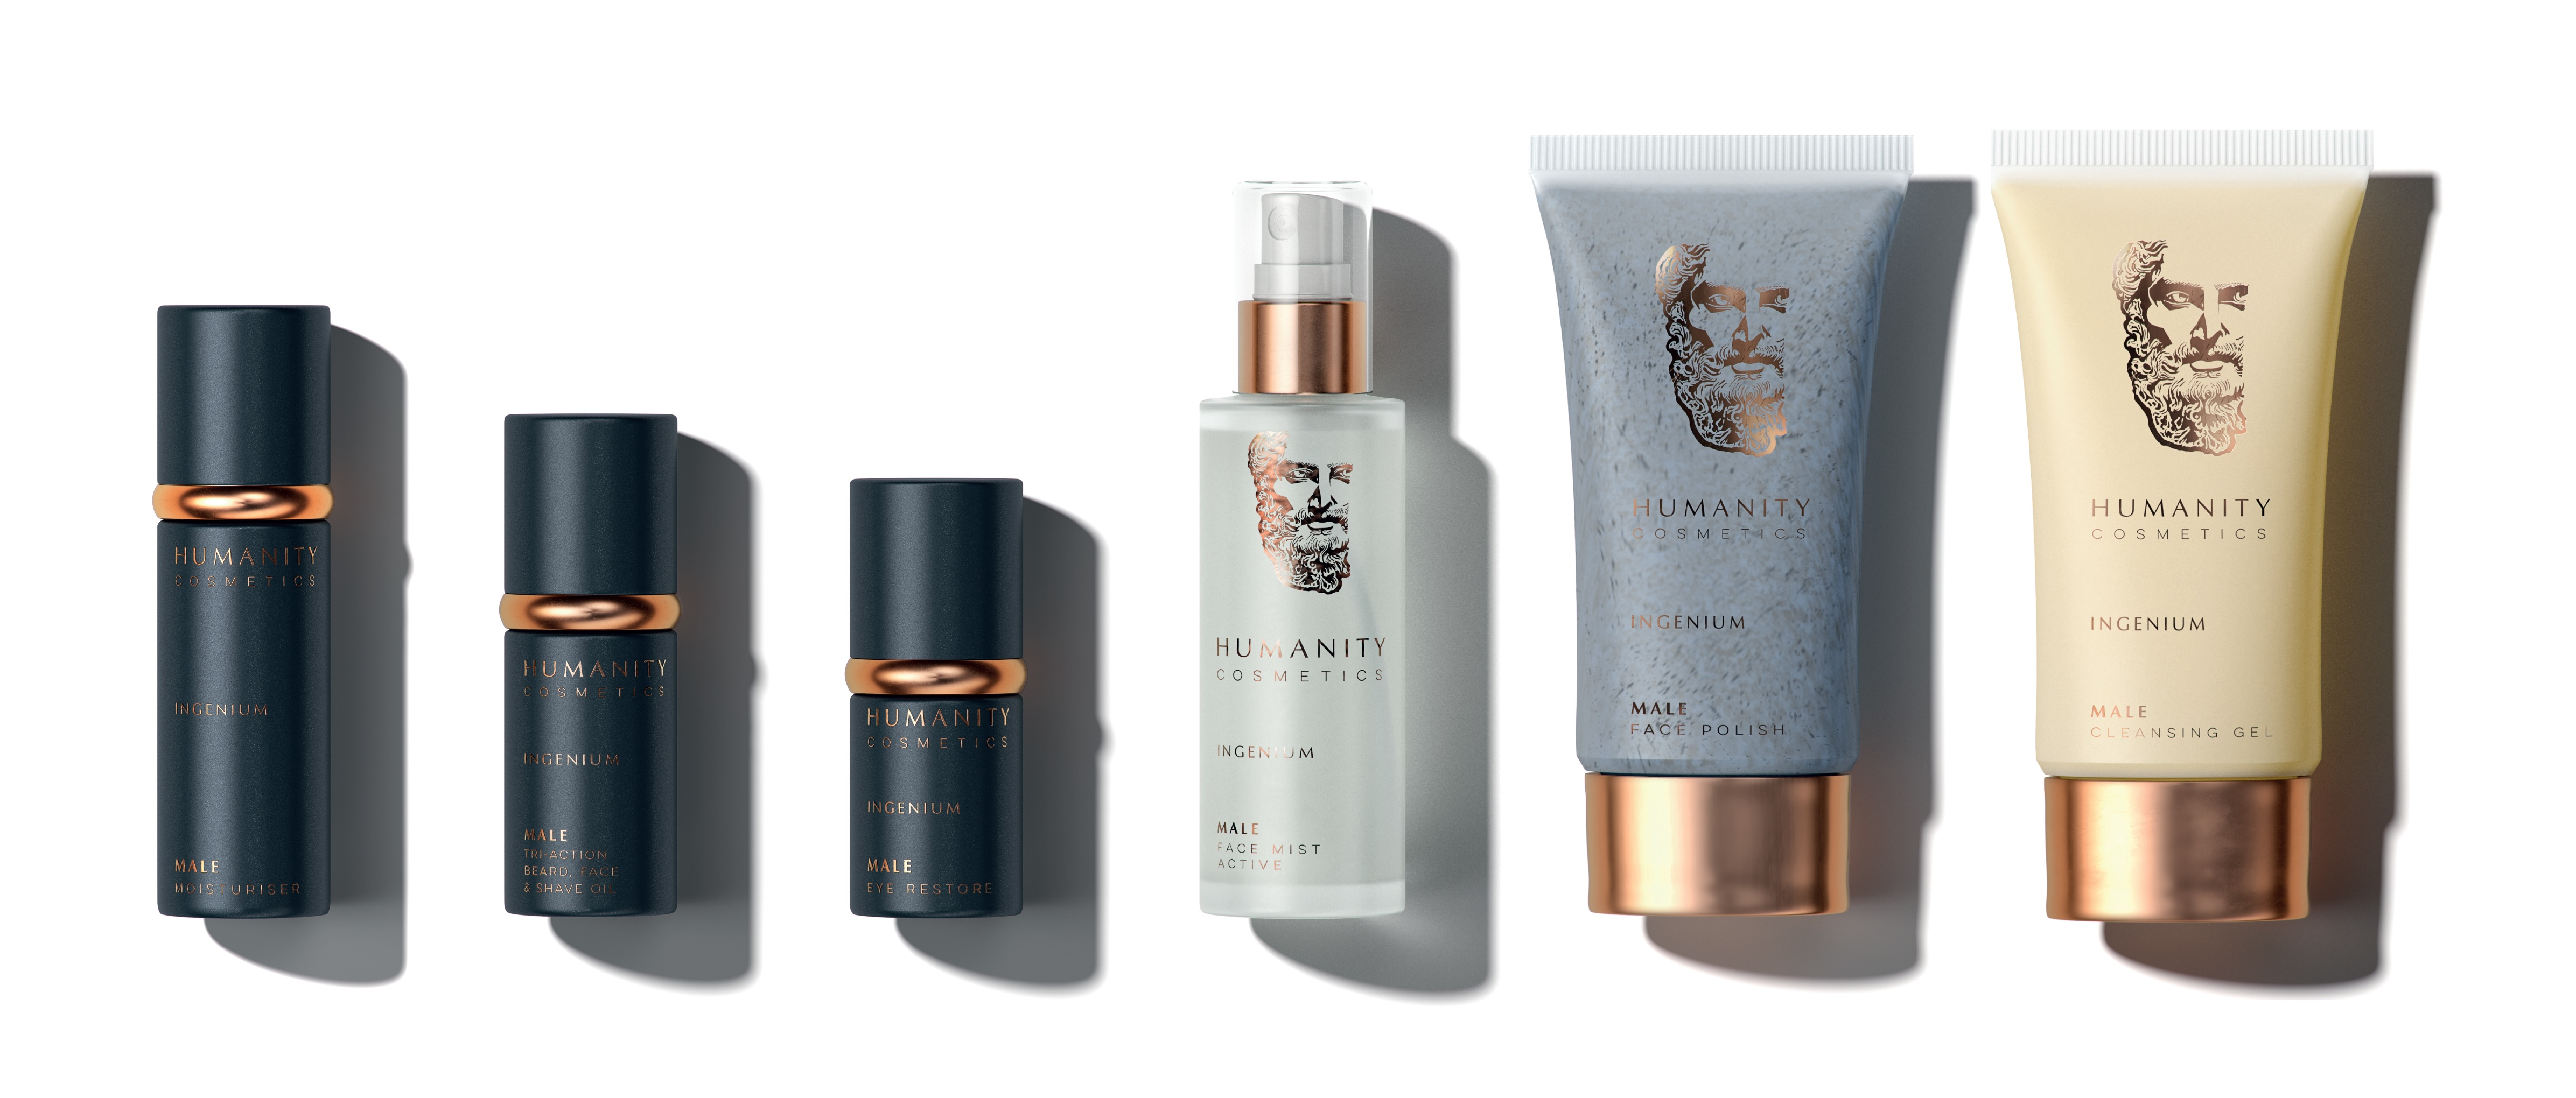 humanity cosmetics male skincare product range skin care for men grooming